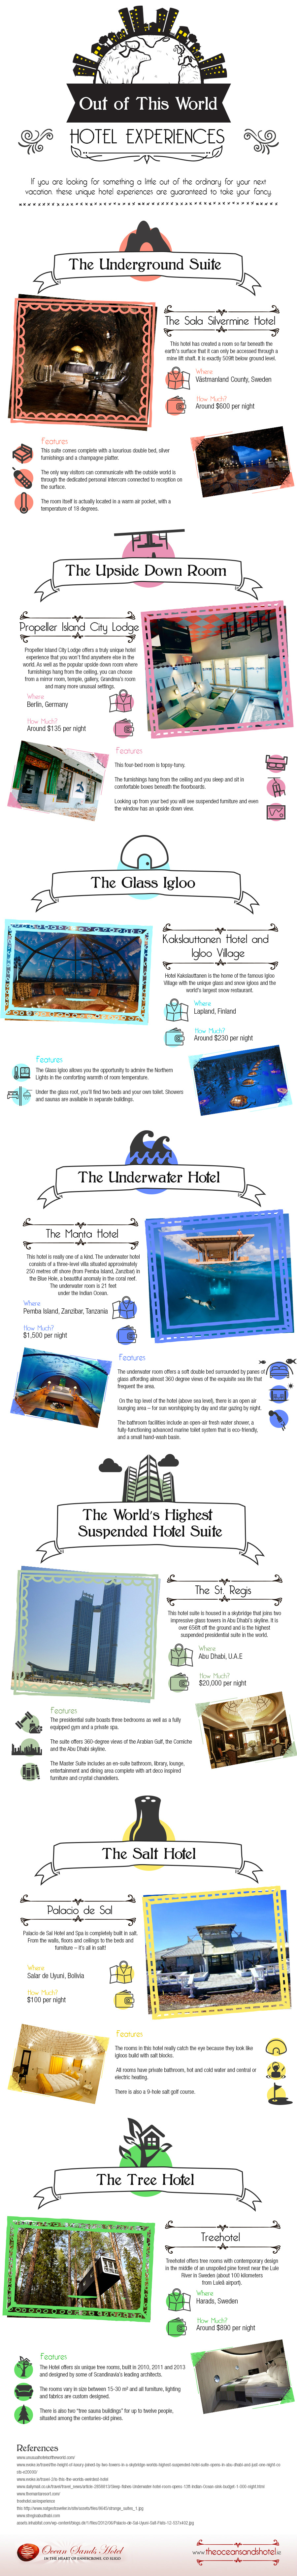 Out-of-This-World-Hotel-Experiences-Infographic (1)